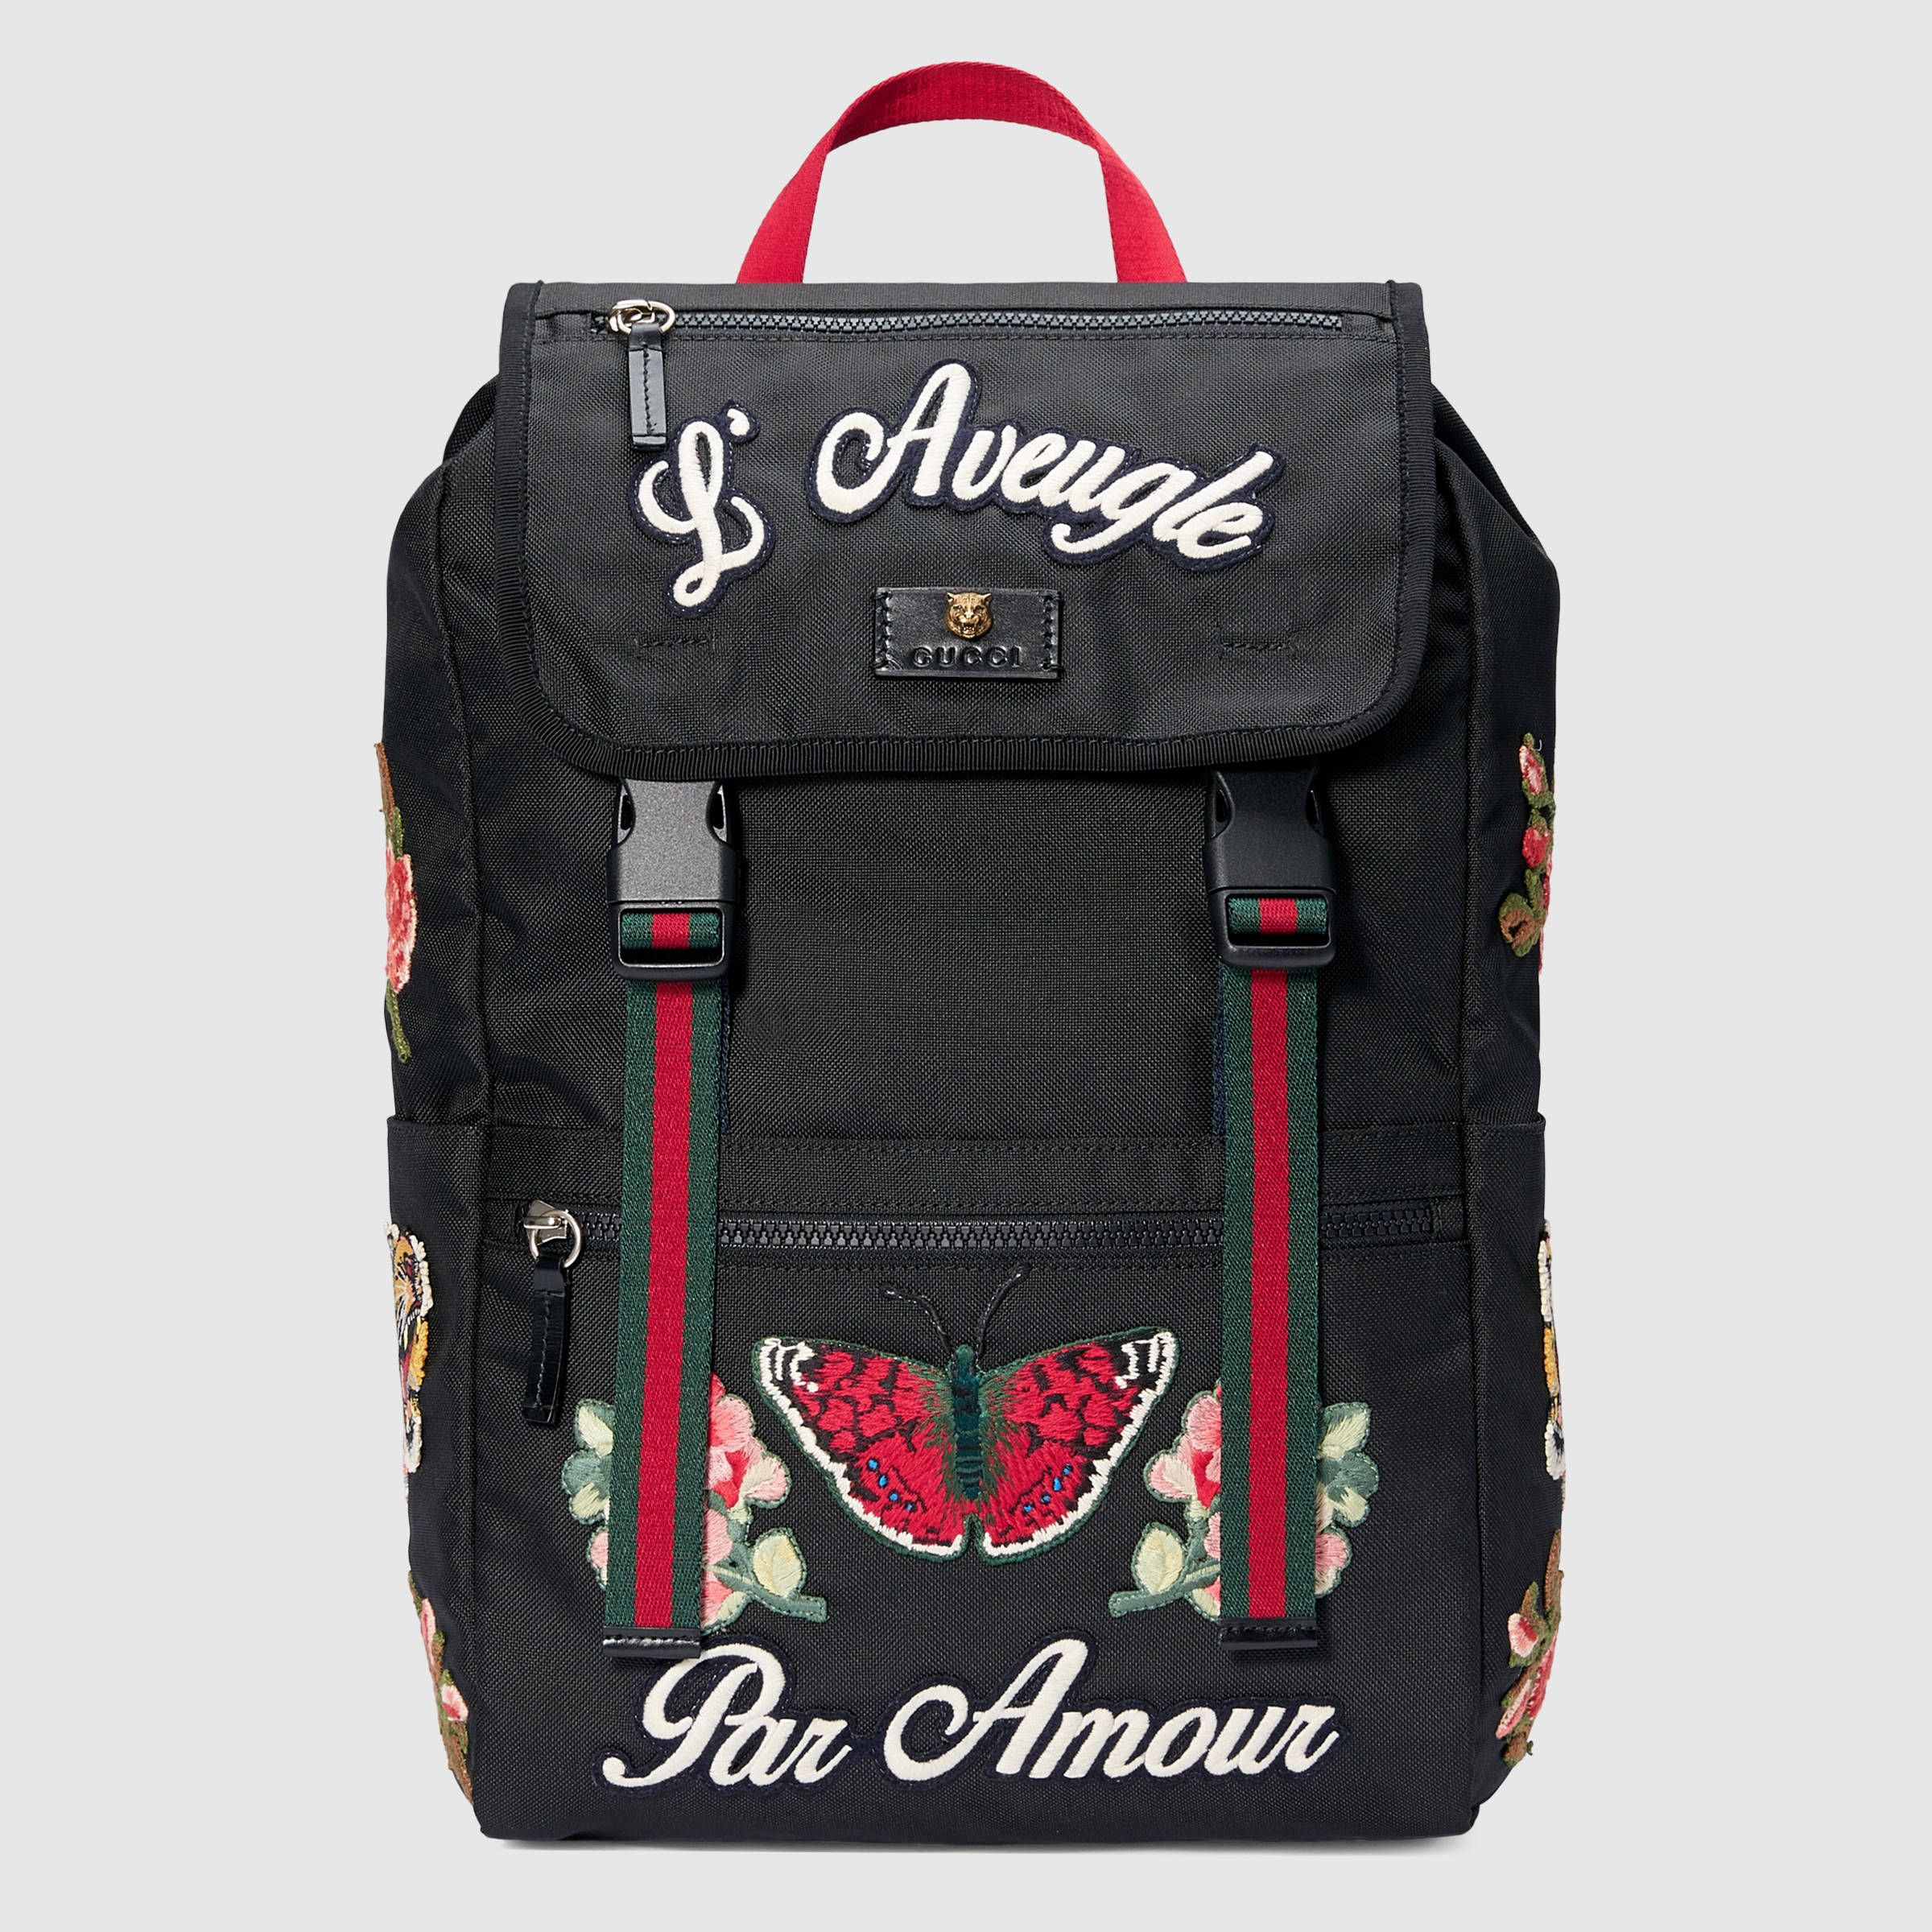 Gucci Backpack Embroidery